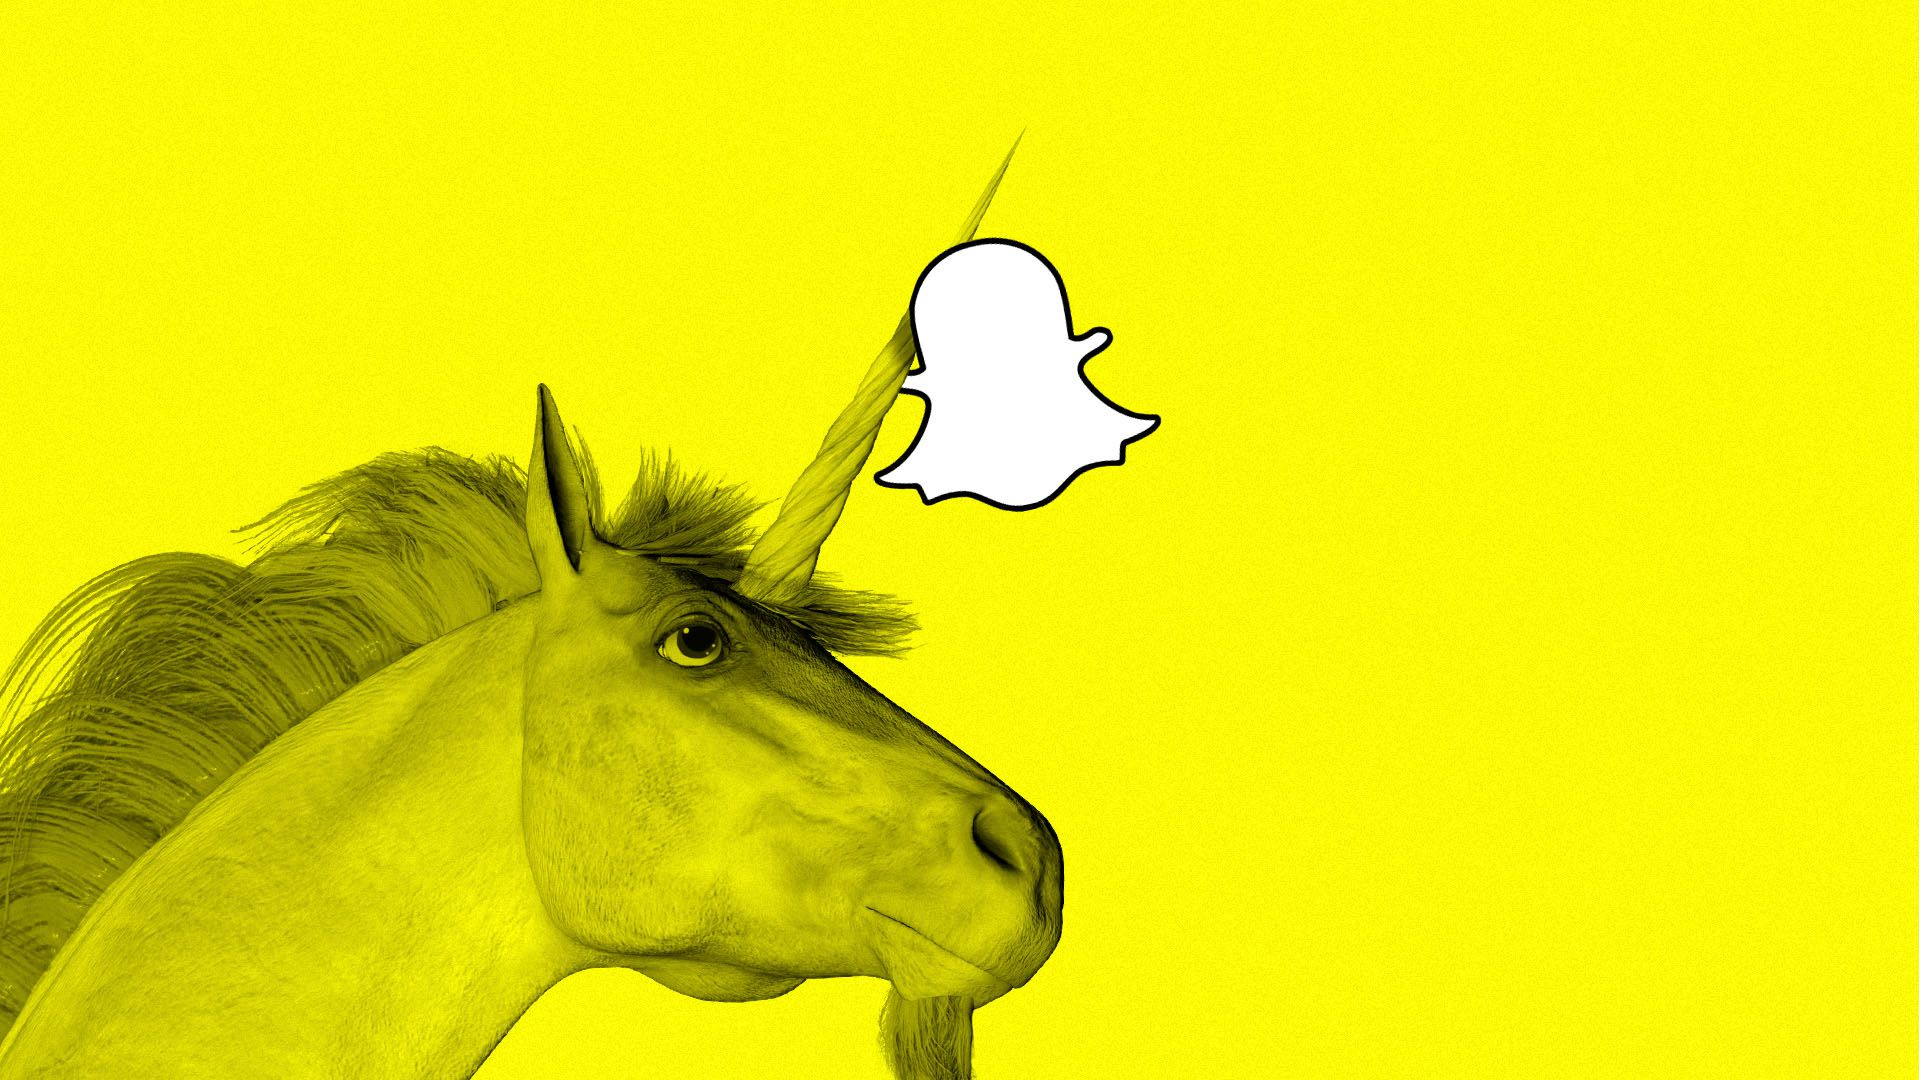 Illustration of a unicorn with the Snapchat ghost logo on it's horn.